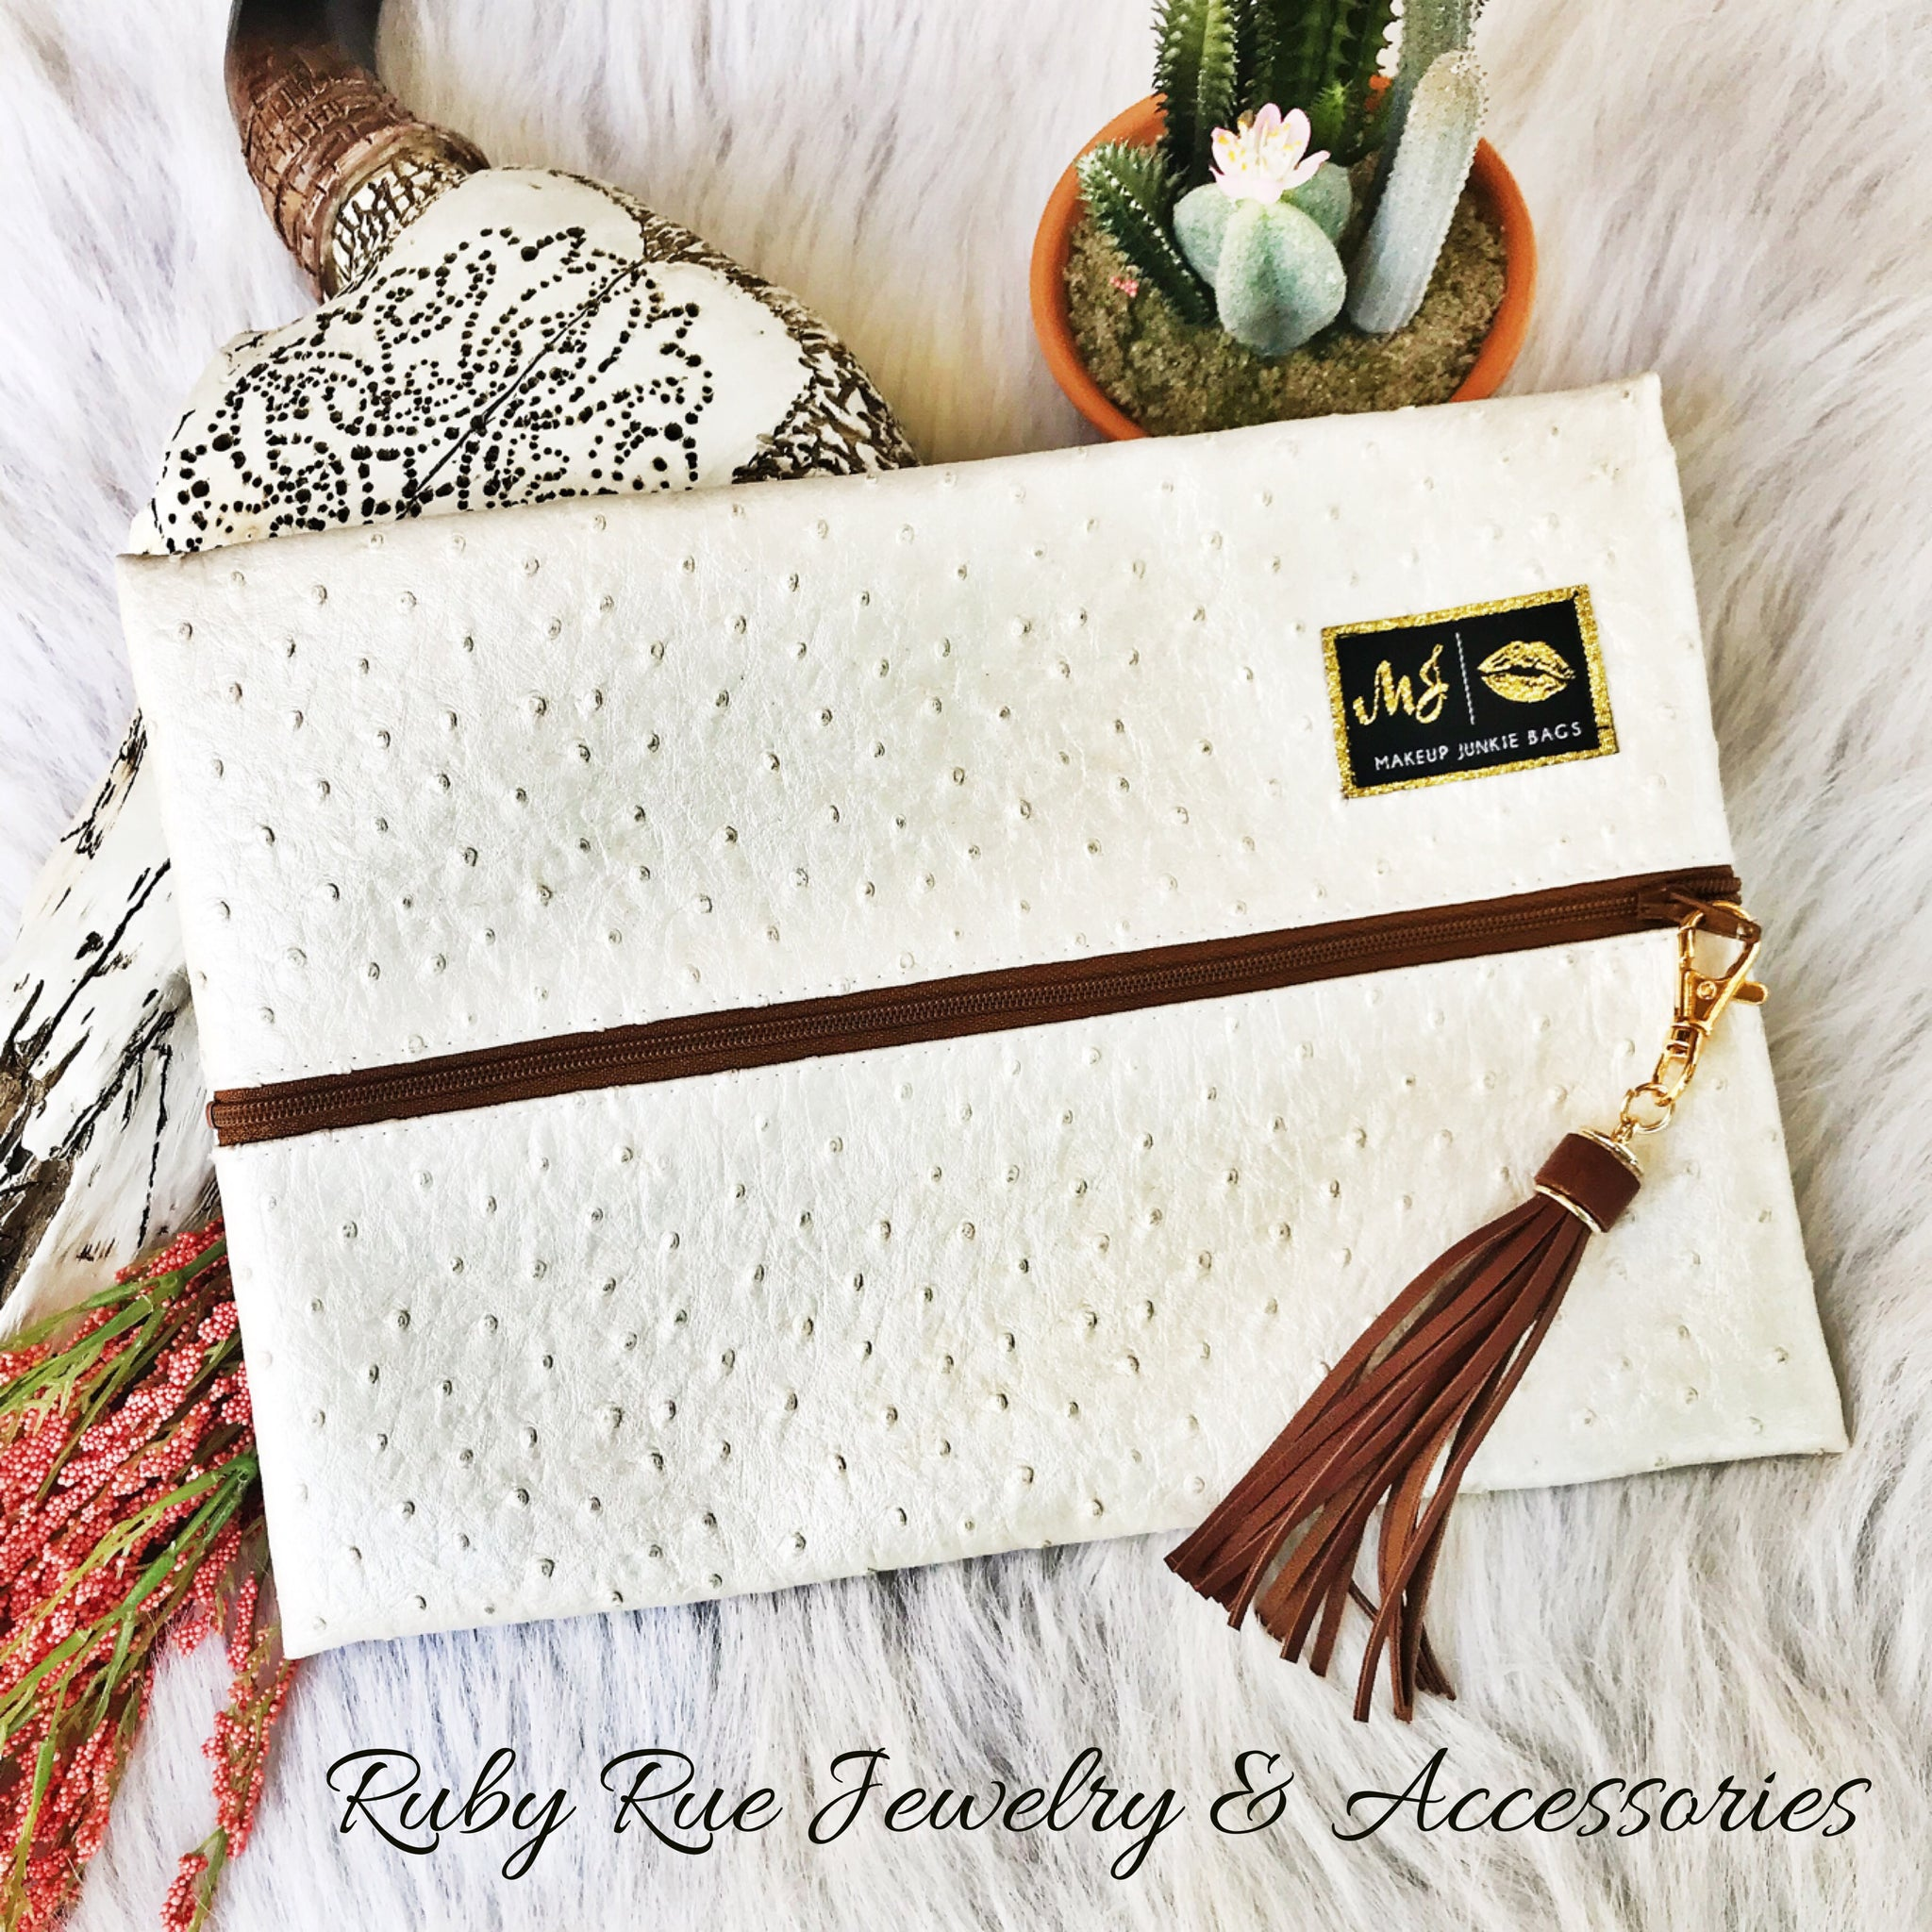 Pearl Girl Makeup Junkie Bag - Ruby Rue Jewelry & Accessories